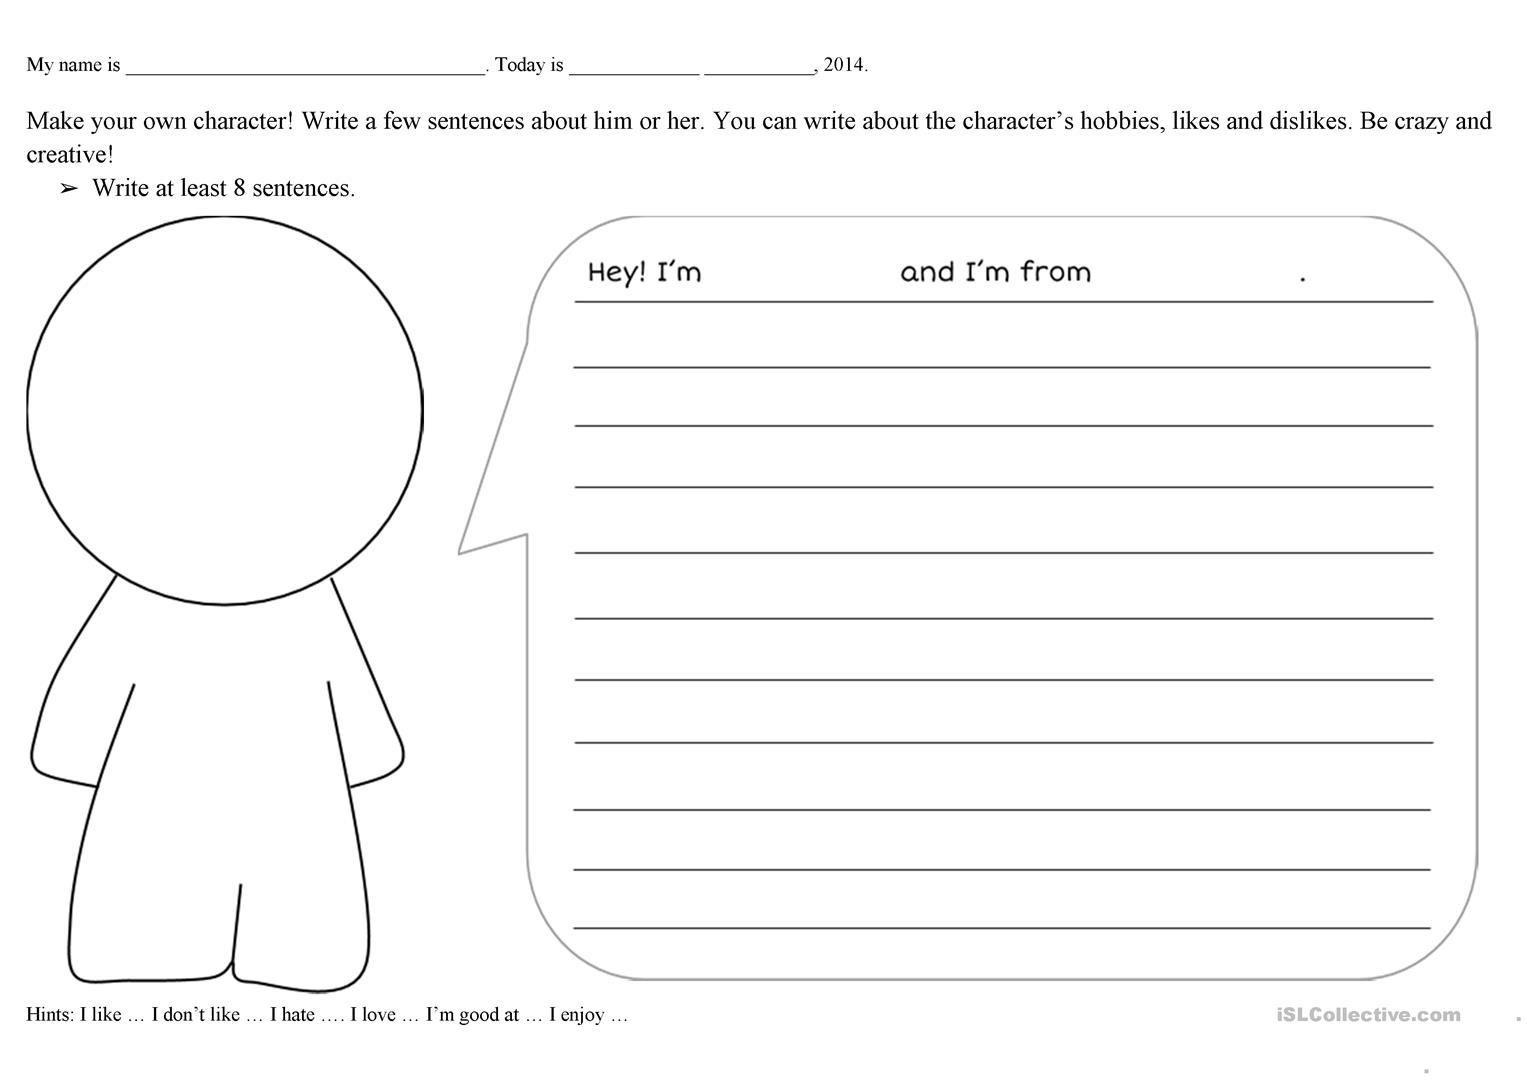 Create A Character Worksheet